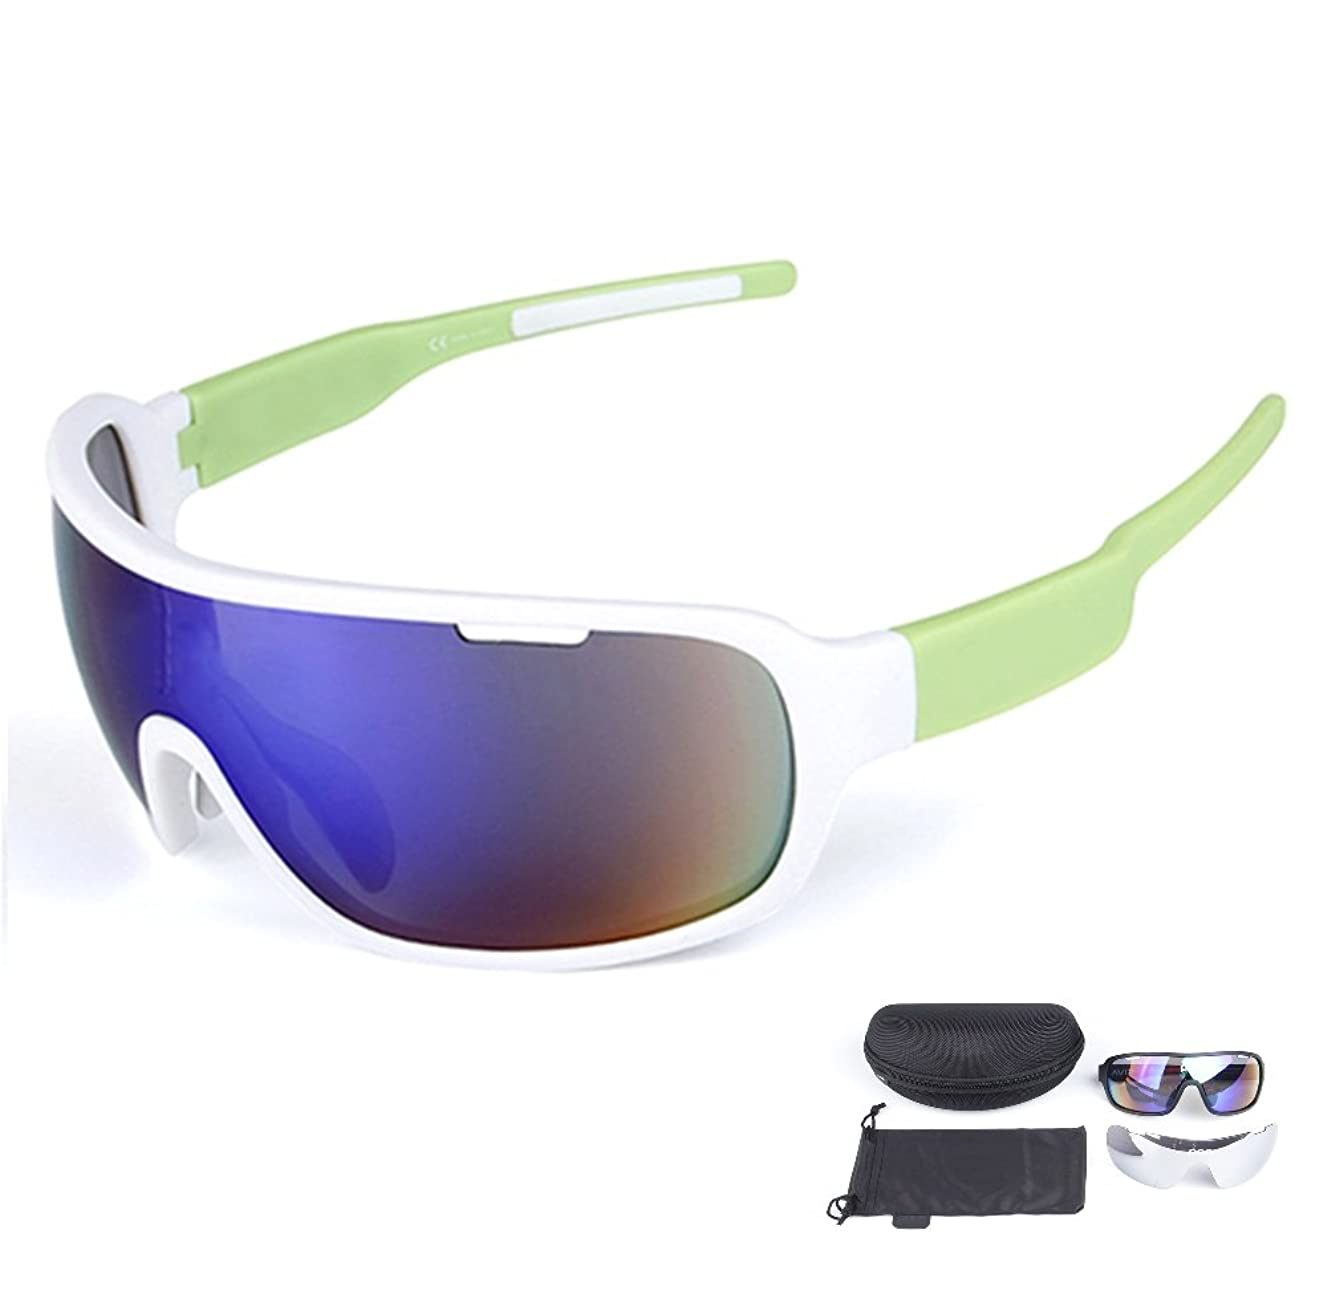 Kagogo Polarized Sports Sunglasses for Men Women Cycling Running Driving Baseball Glasses UV Protection